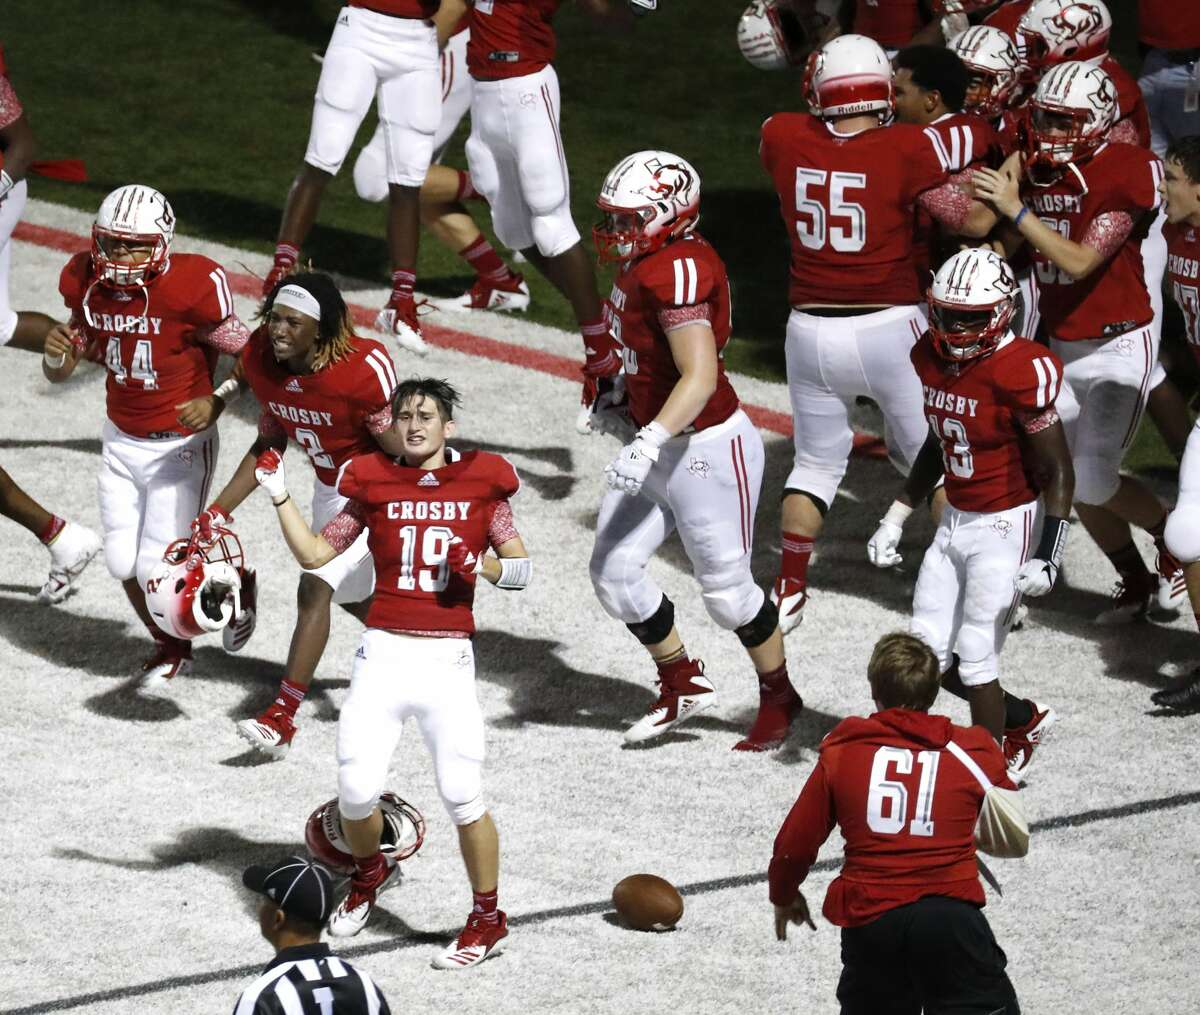 Crosby 49, Manvel 47 Crosby players storm the field after a last second touchdown to win 49-47 over Manvel during a high school football game at Cougar Stadium between Manvel and Crosby High Schools, Friday, September 7, 2018, in Crosby.